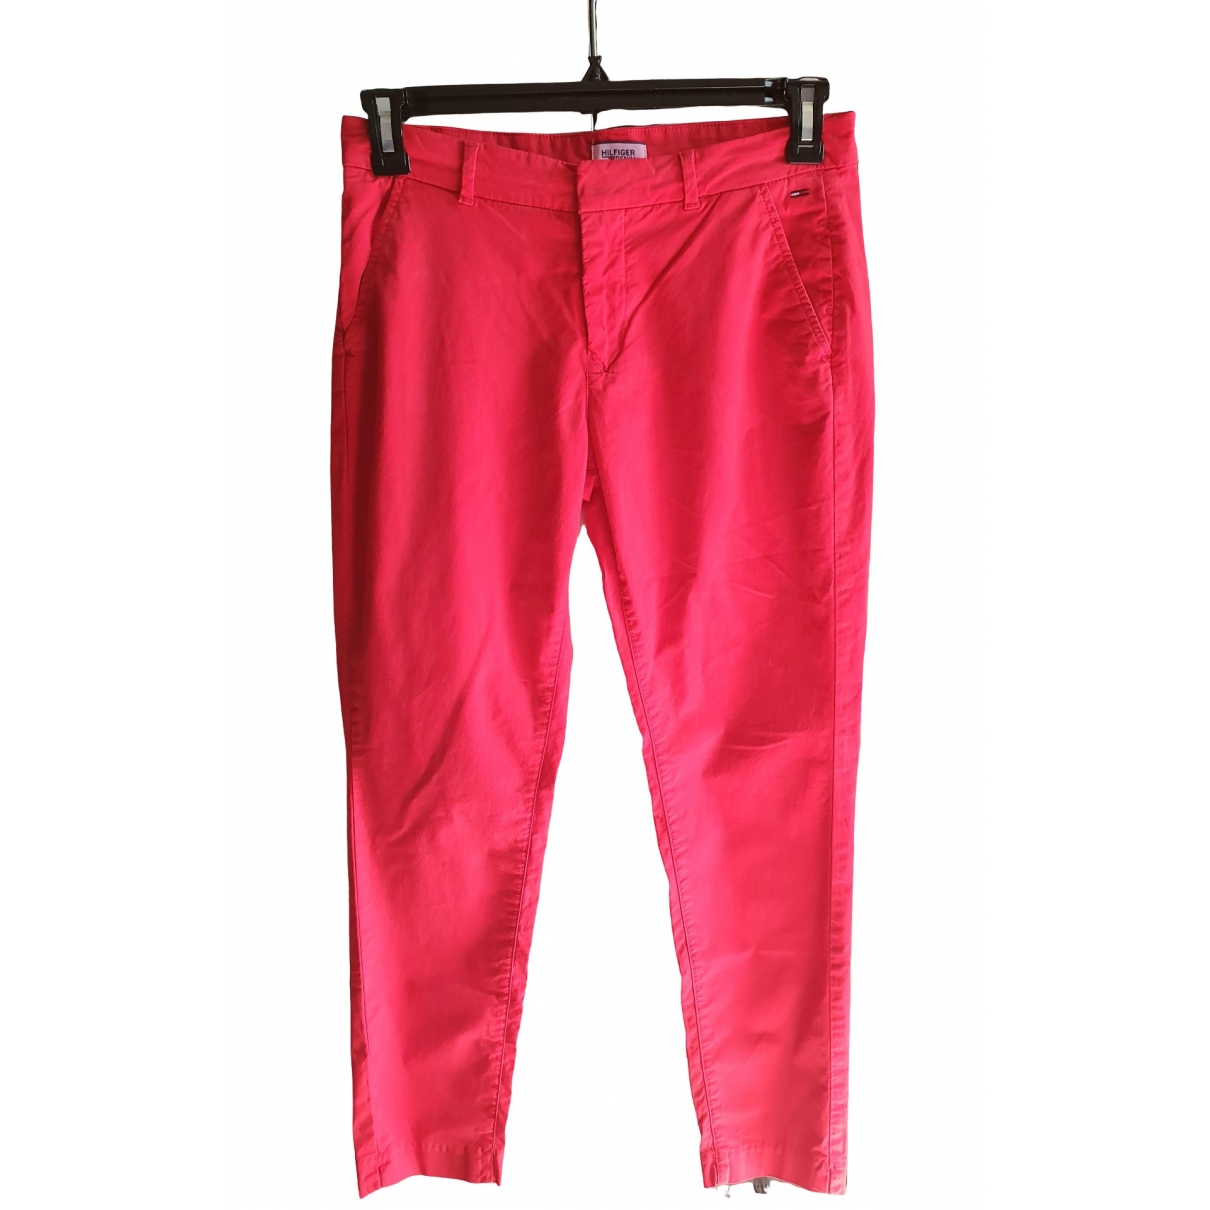 Tommy Hilfiger \N Red Denim - Jeans Trousers for Women 38 FR